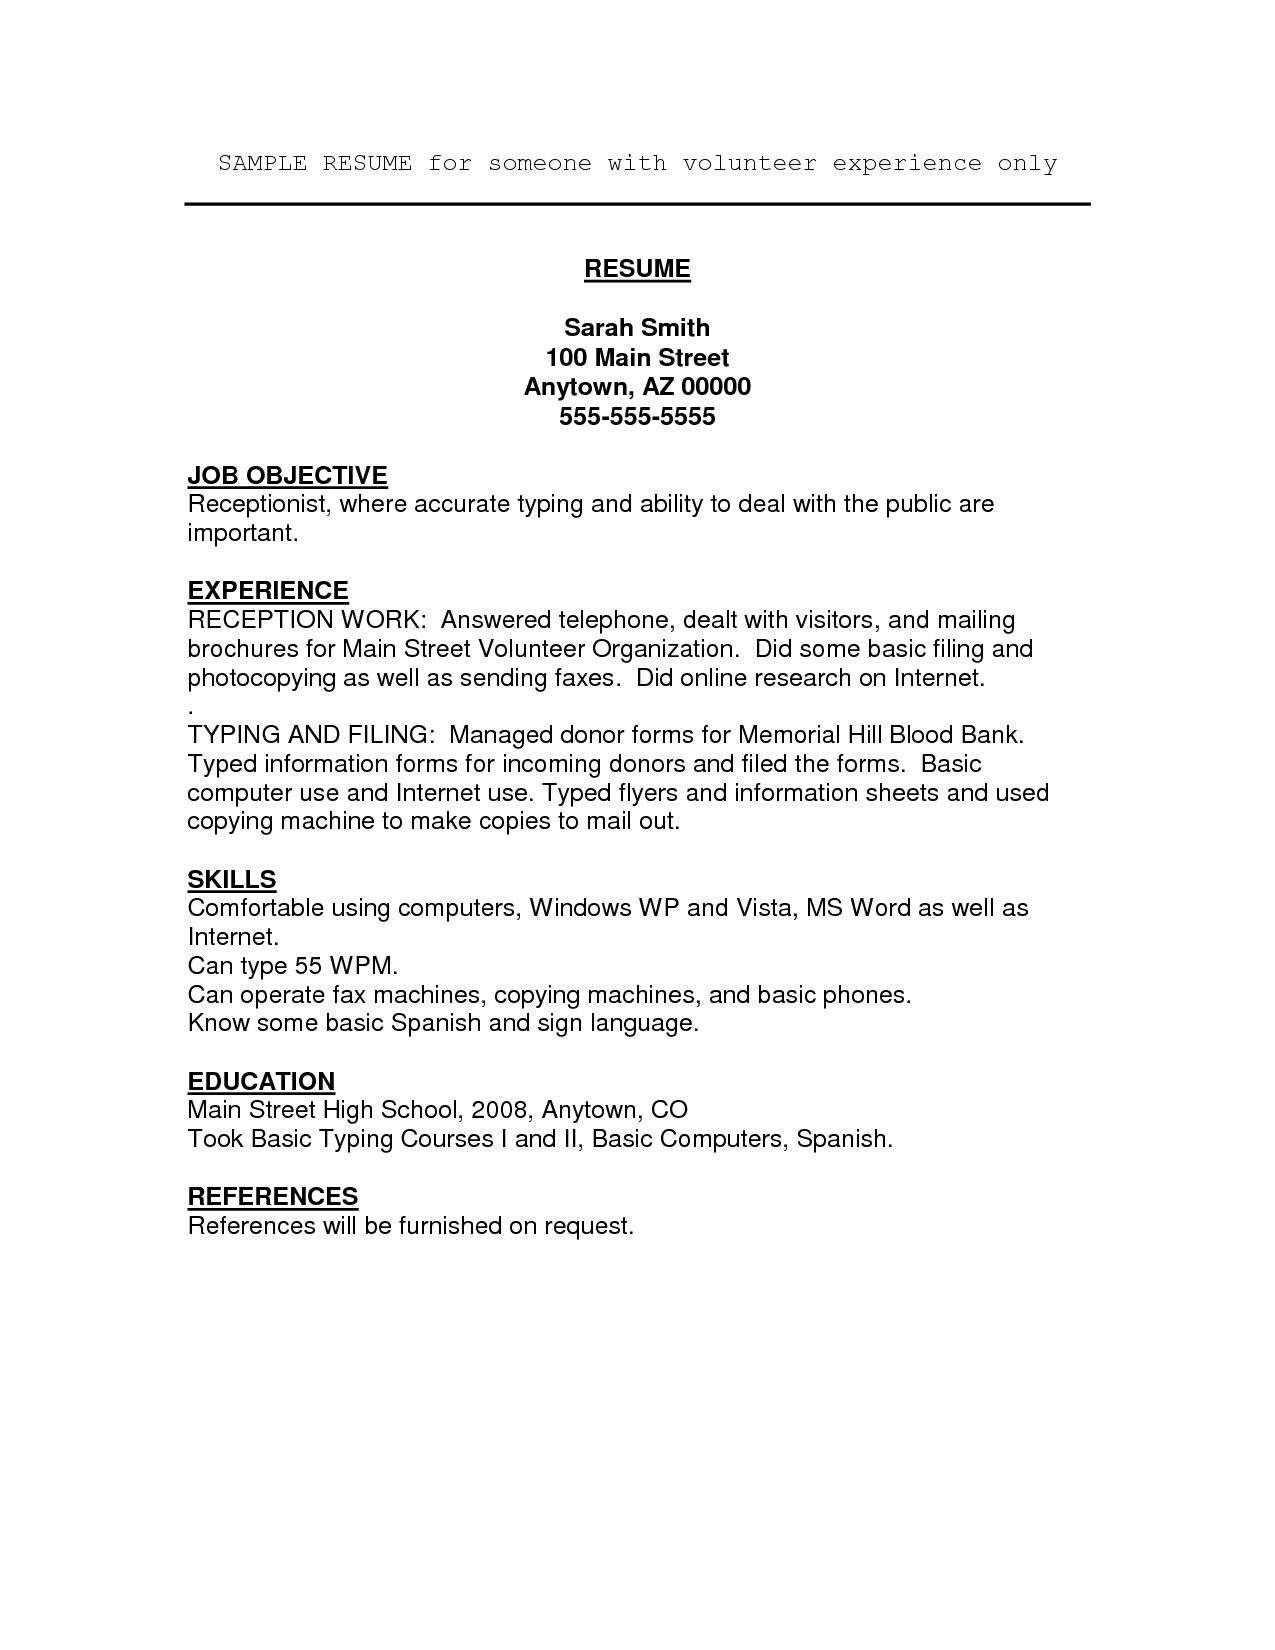 Experience Resume Template Job Resume Volunteer Experience  Httpwwwresumecareerjob